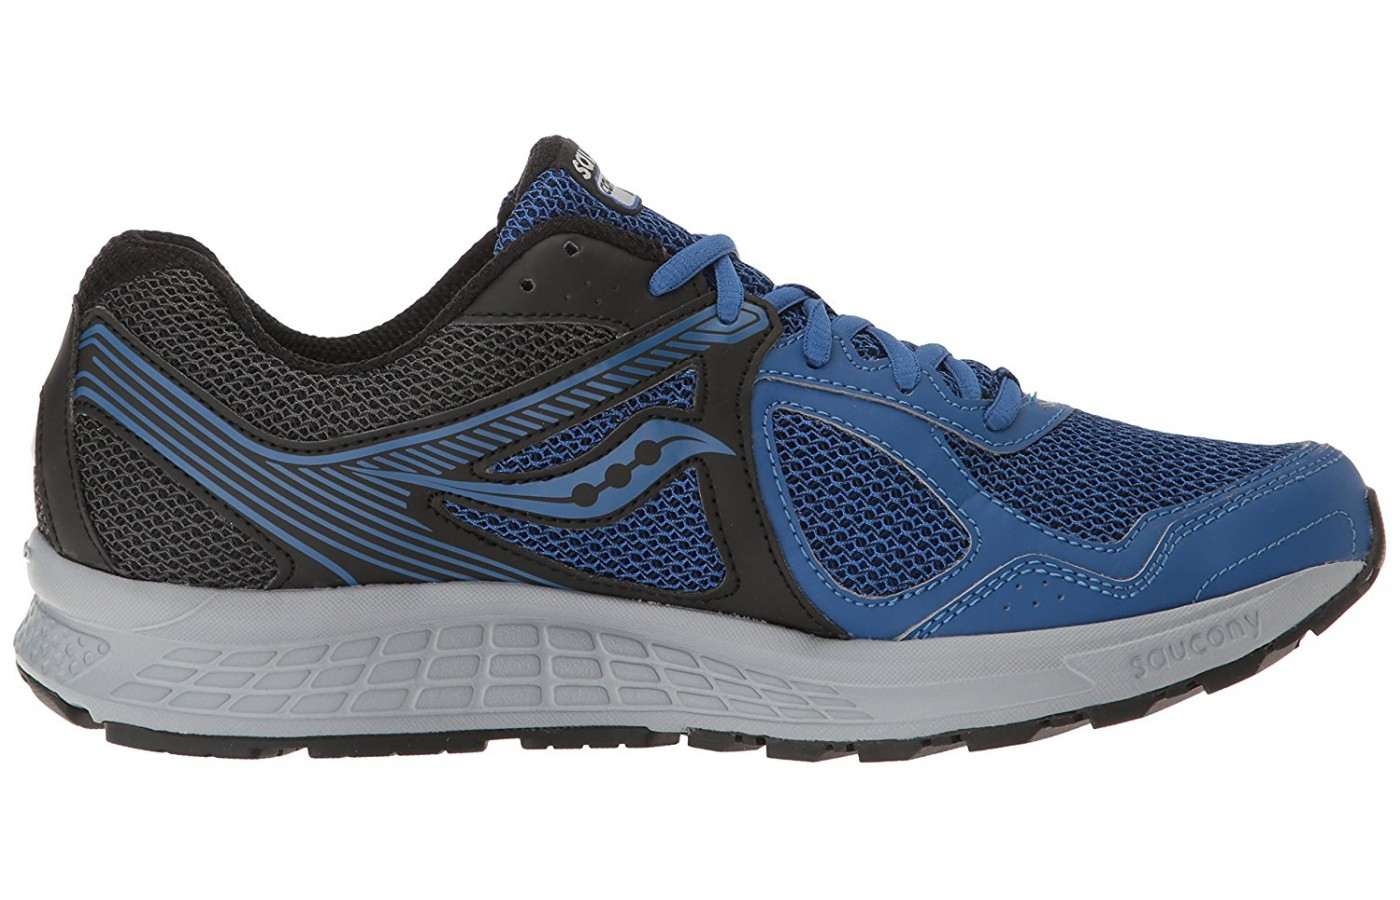 Saucony Cohesion 10 side